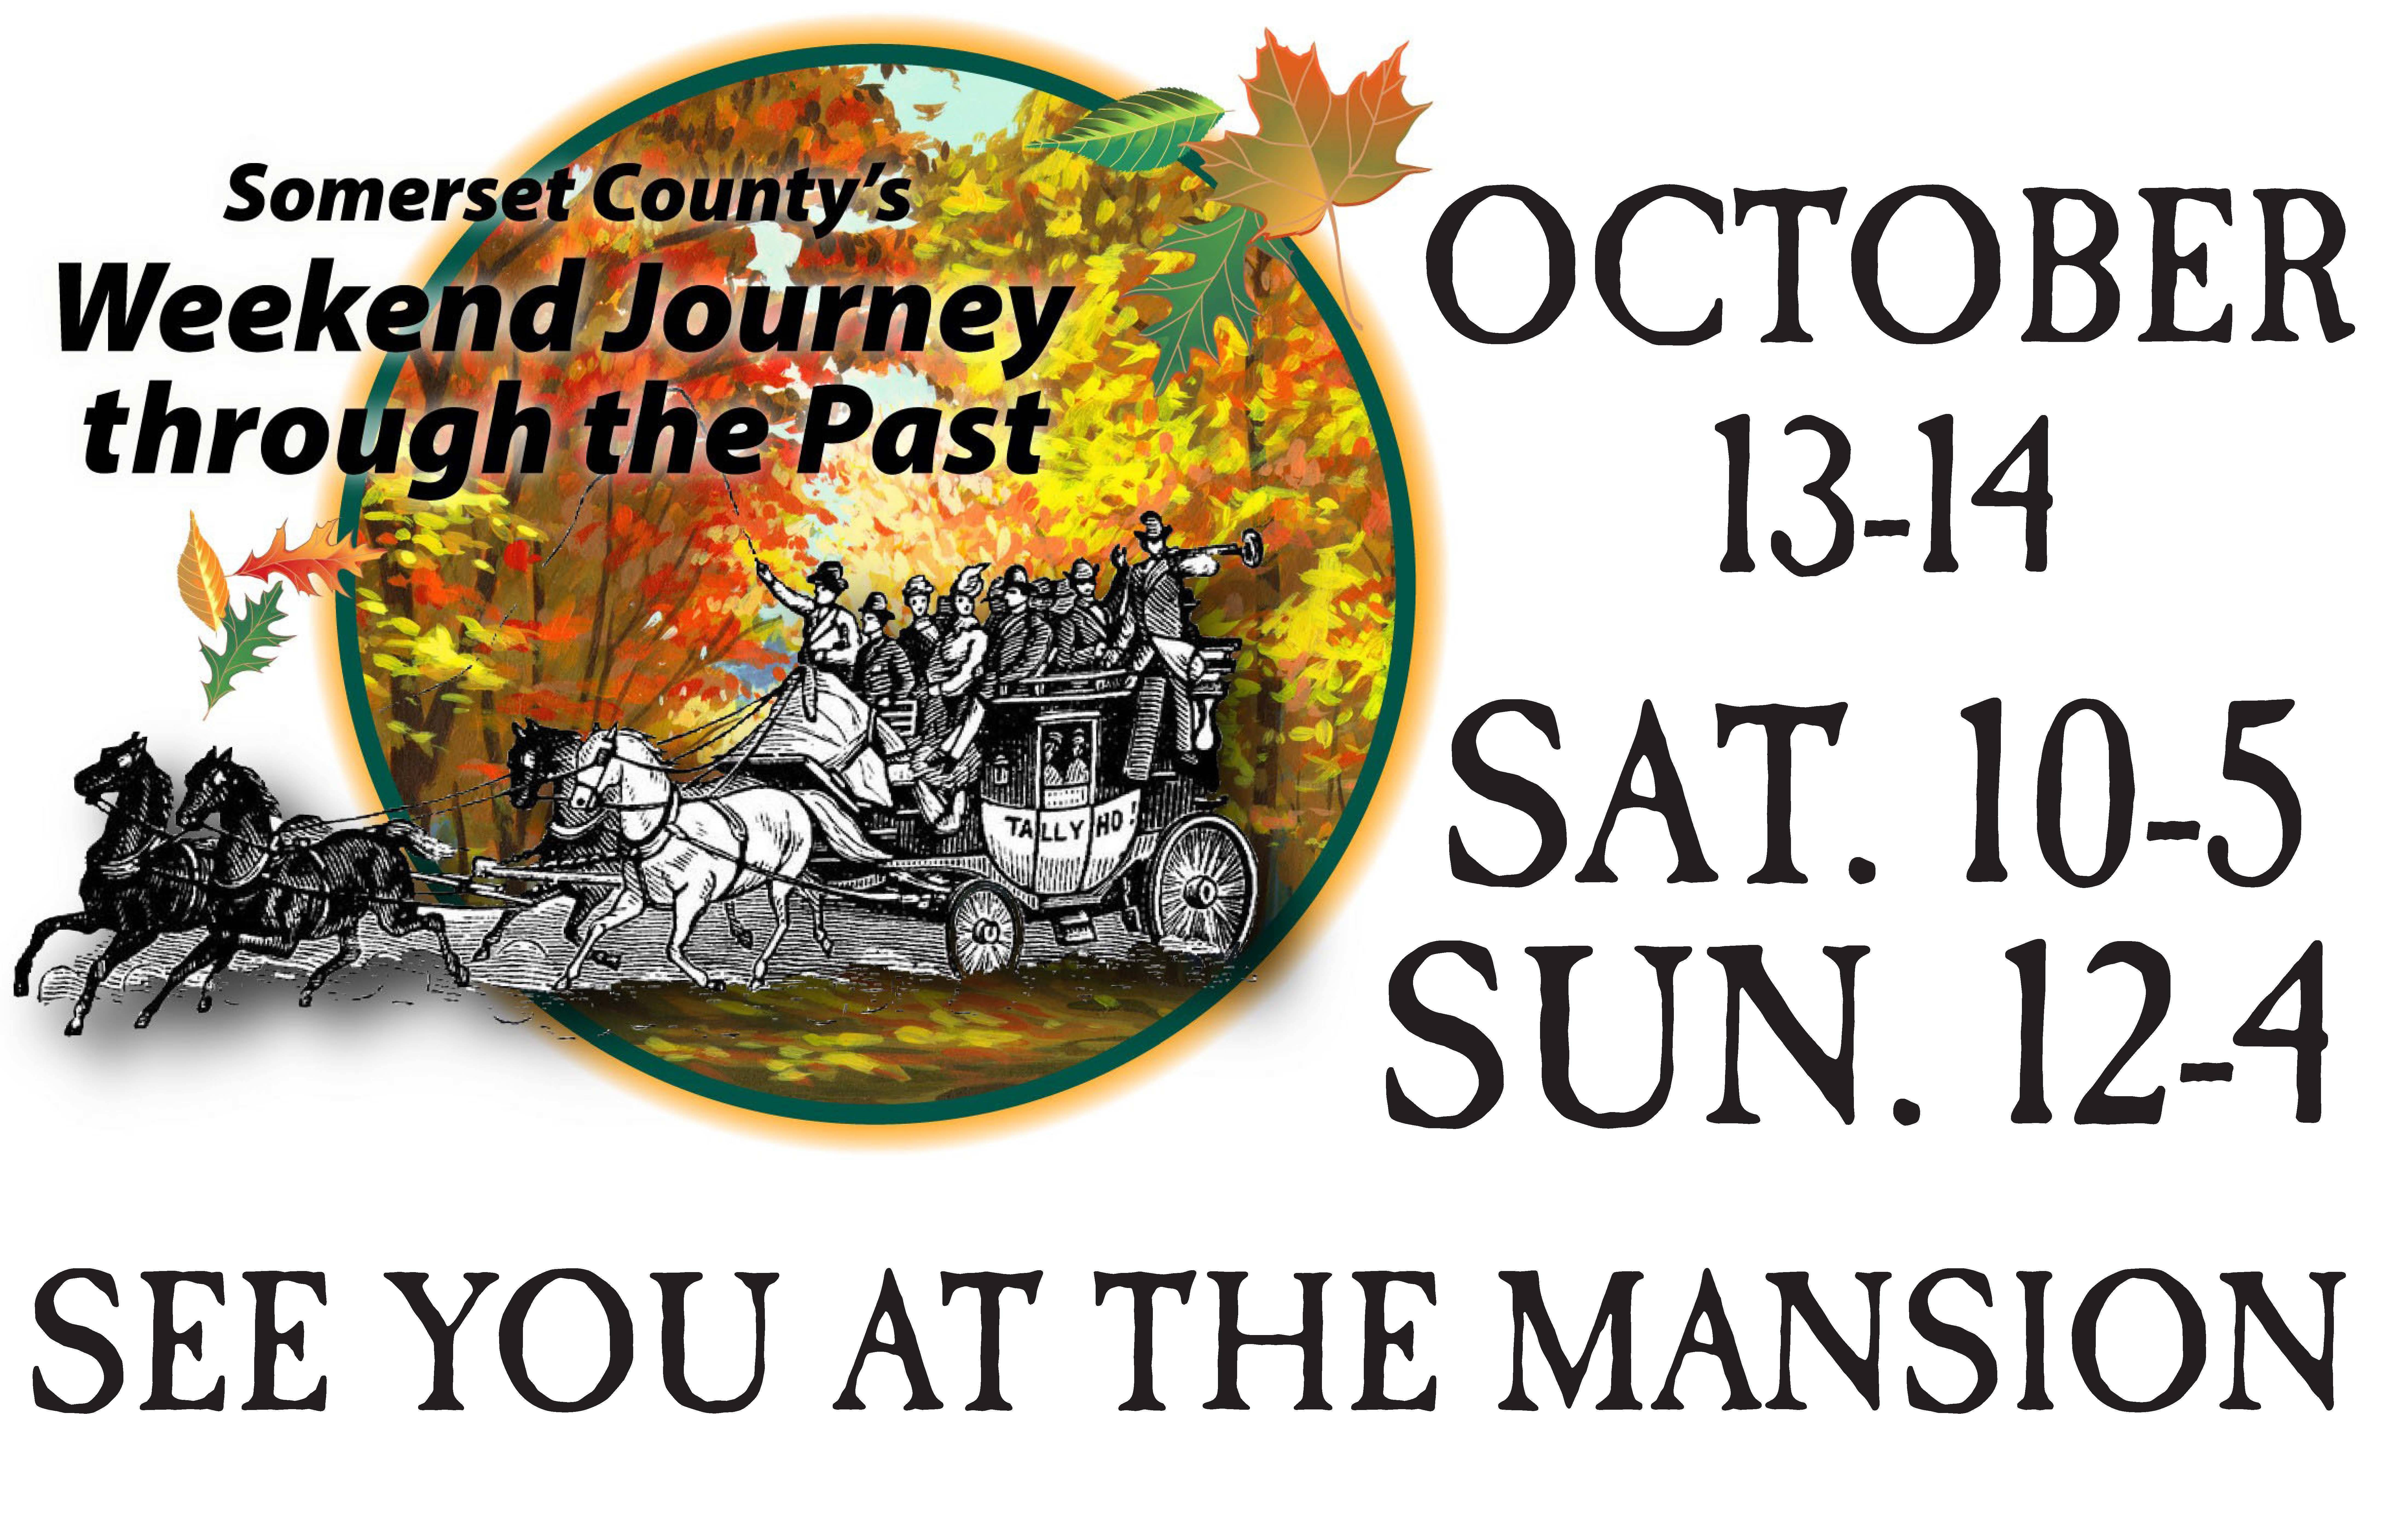 Vermeule Mansion to Participate in Weekend Journey Event in October